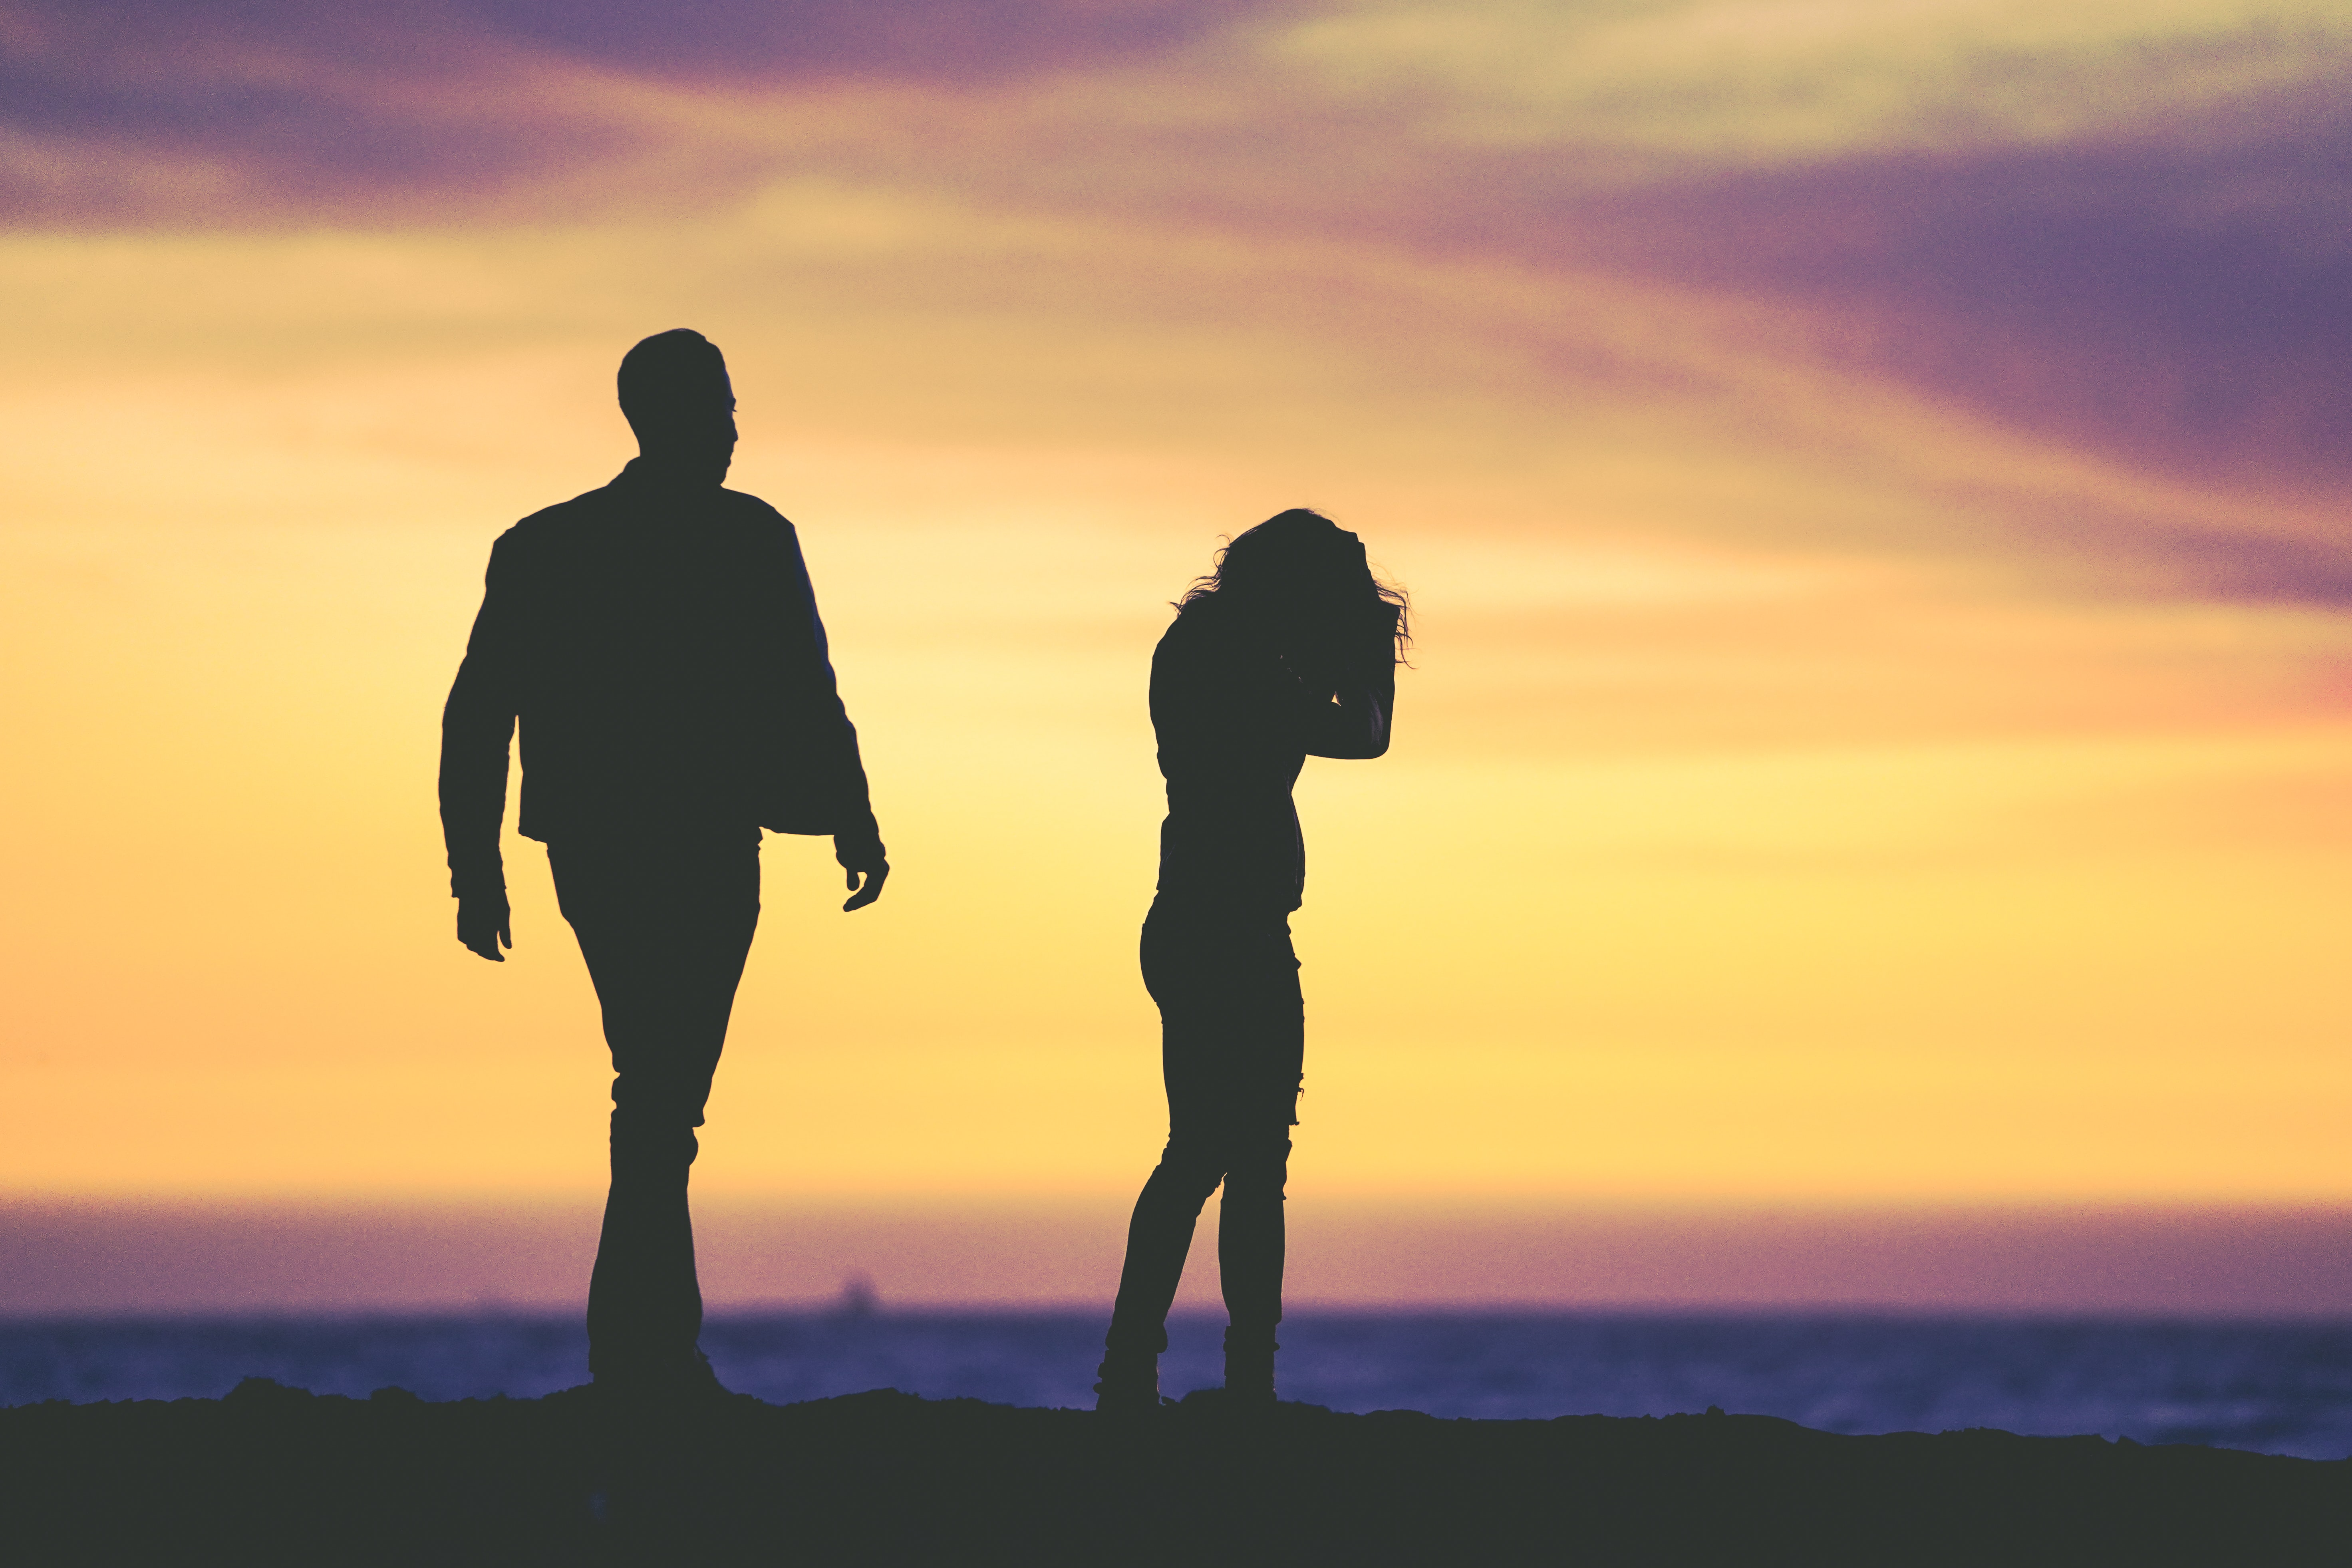 silhouette of man and woman under yellow sky